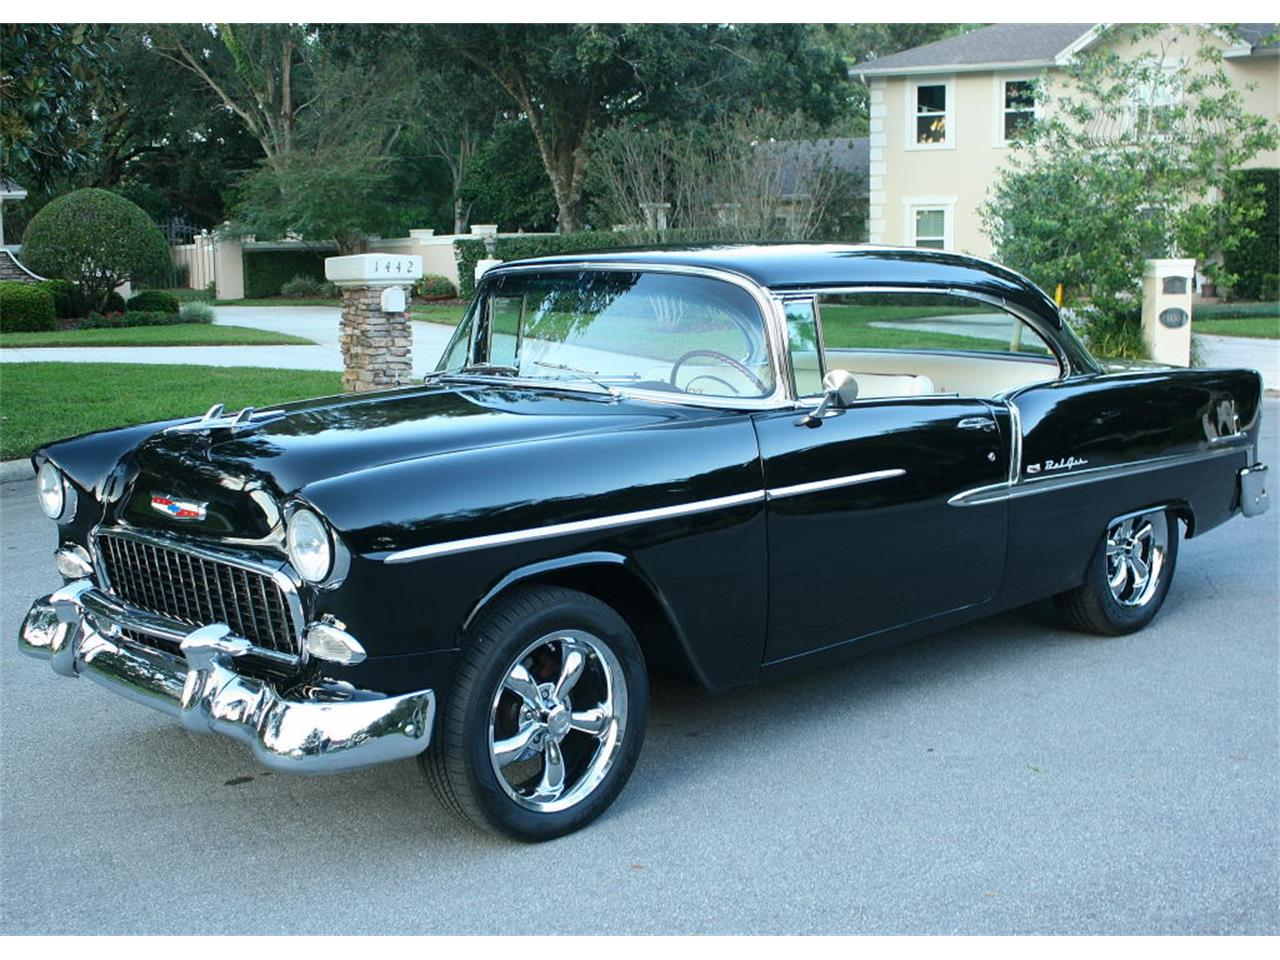 Large Picture of '55 Chevrolet Bel Air located in Lakeland Florida - $59,500.00 Offered by MJC Classic Cars - MCLQ